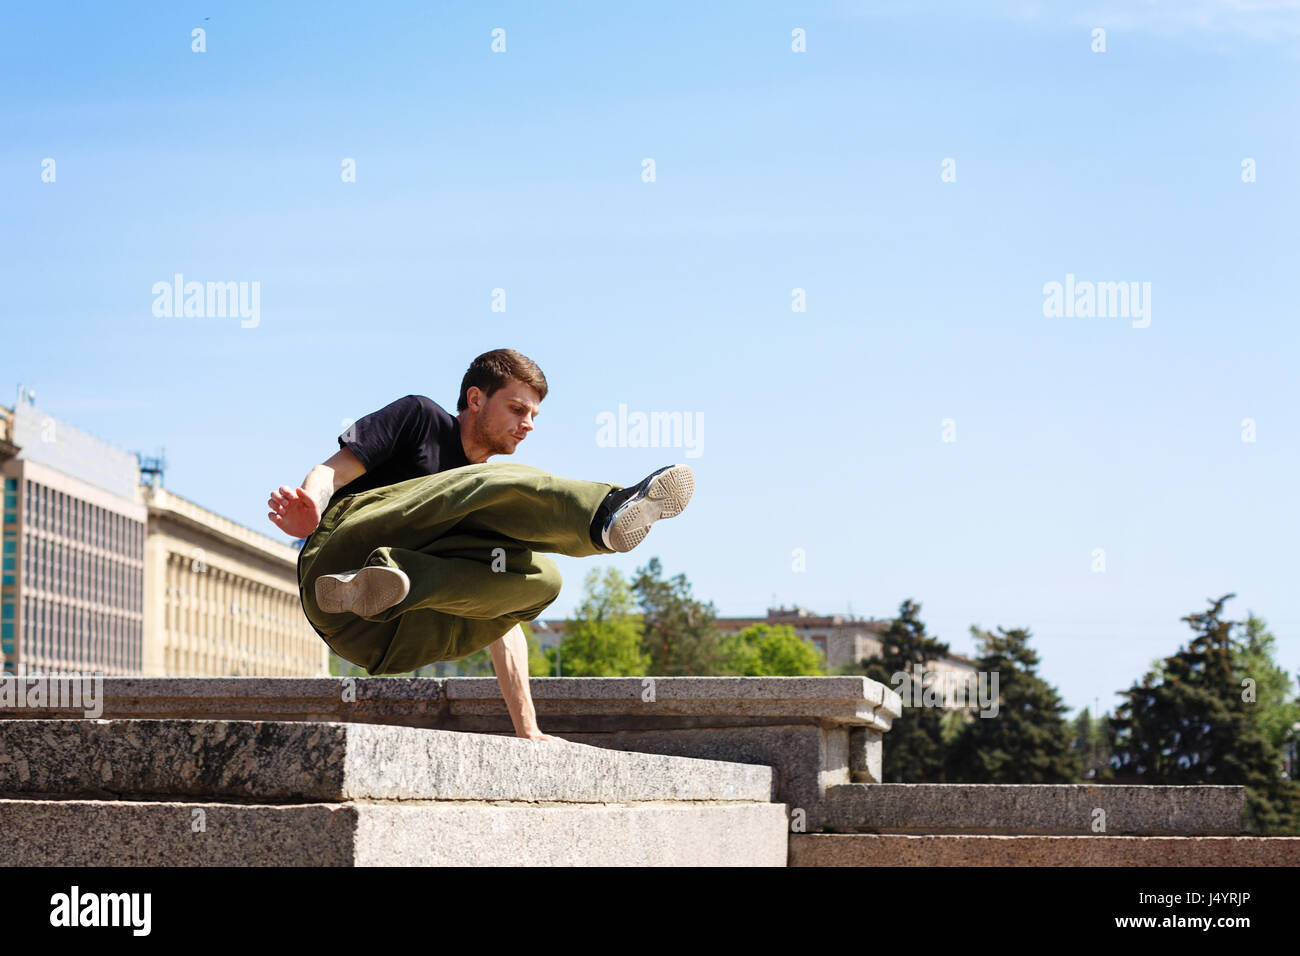 Young man jumping over the wall. Parkour in the urban space. Sports in the city. Sport activity. - Stock Image